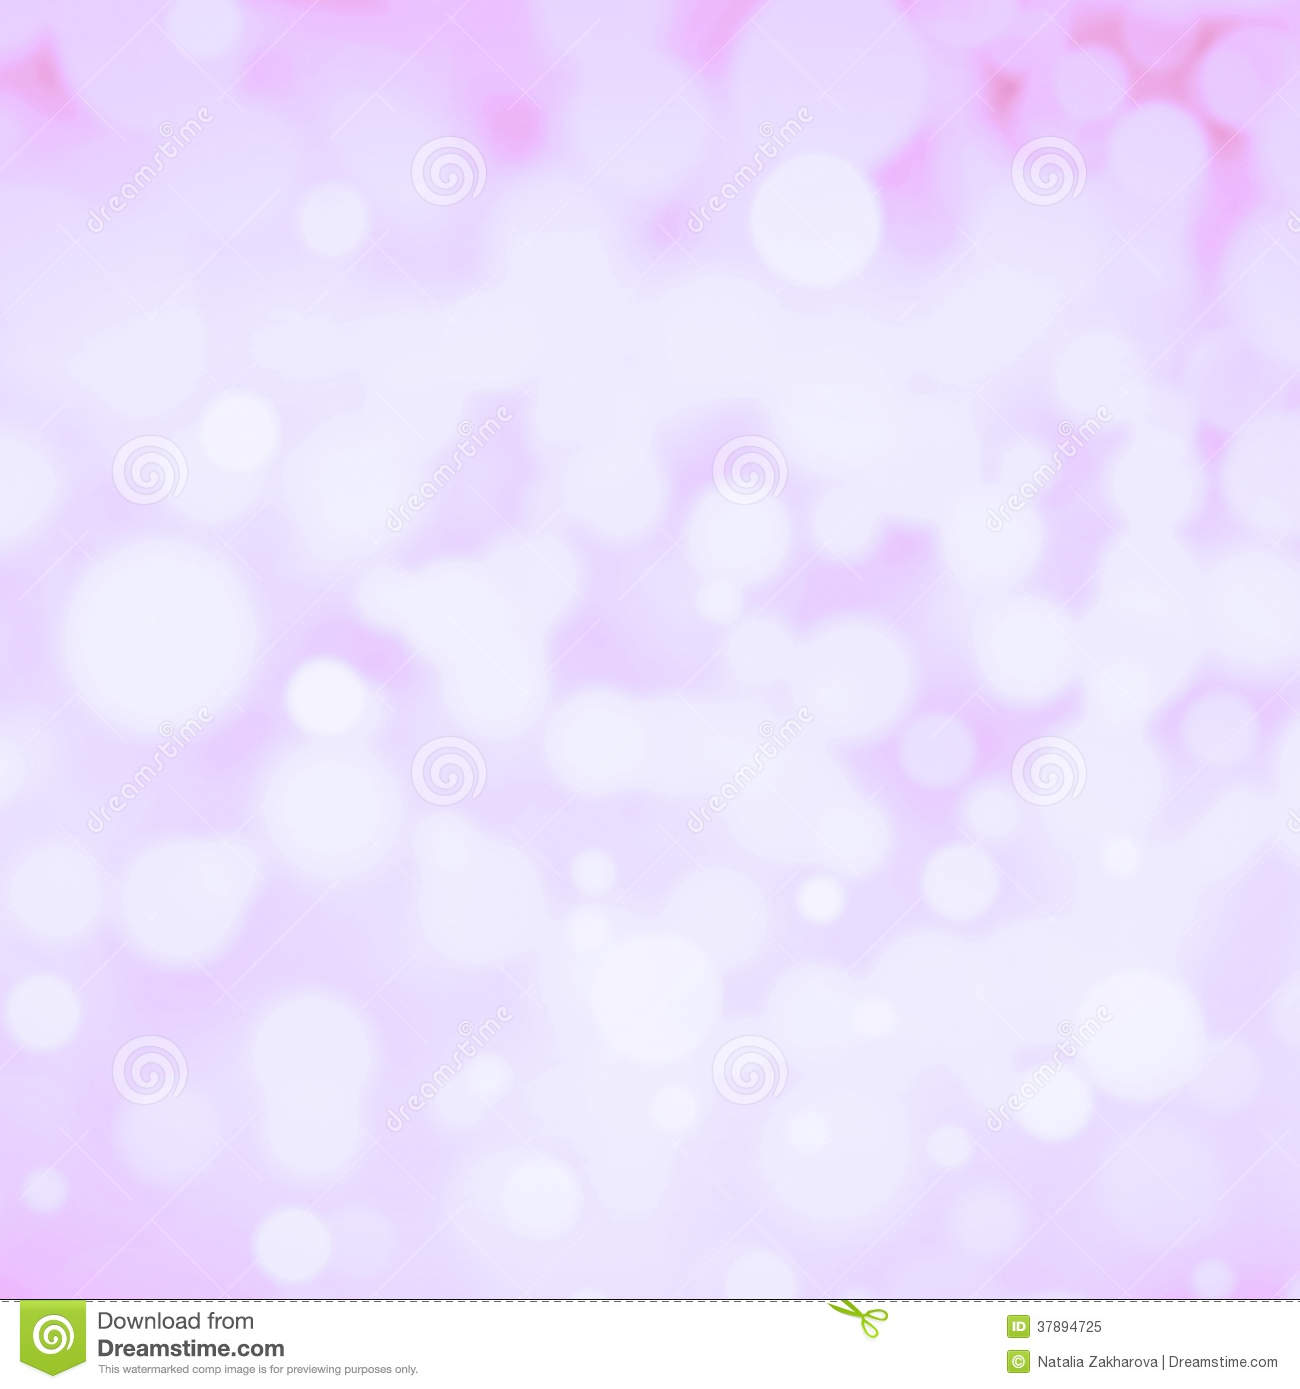 Abstract twinkled lights background with bokeh defocused white